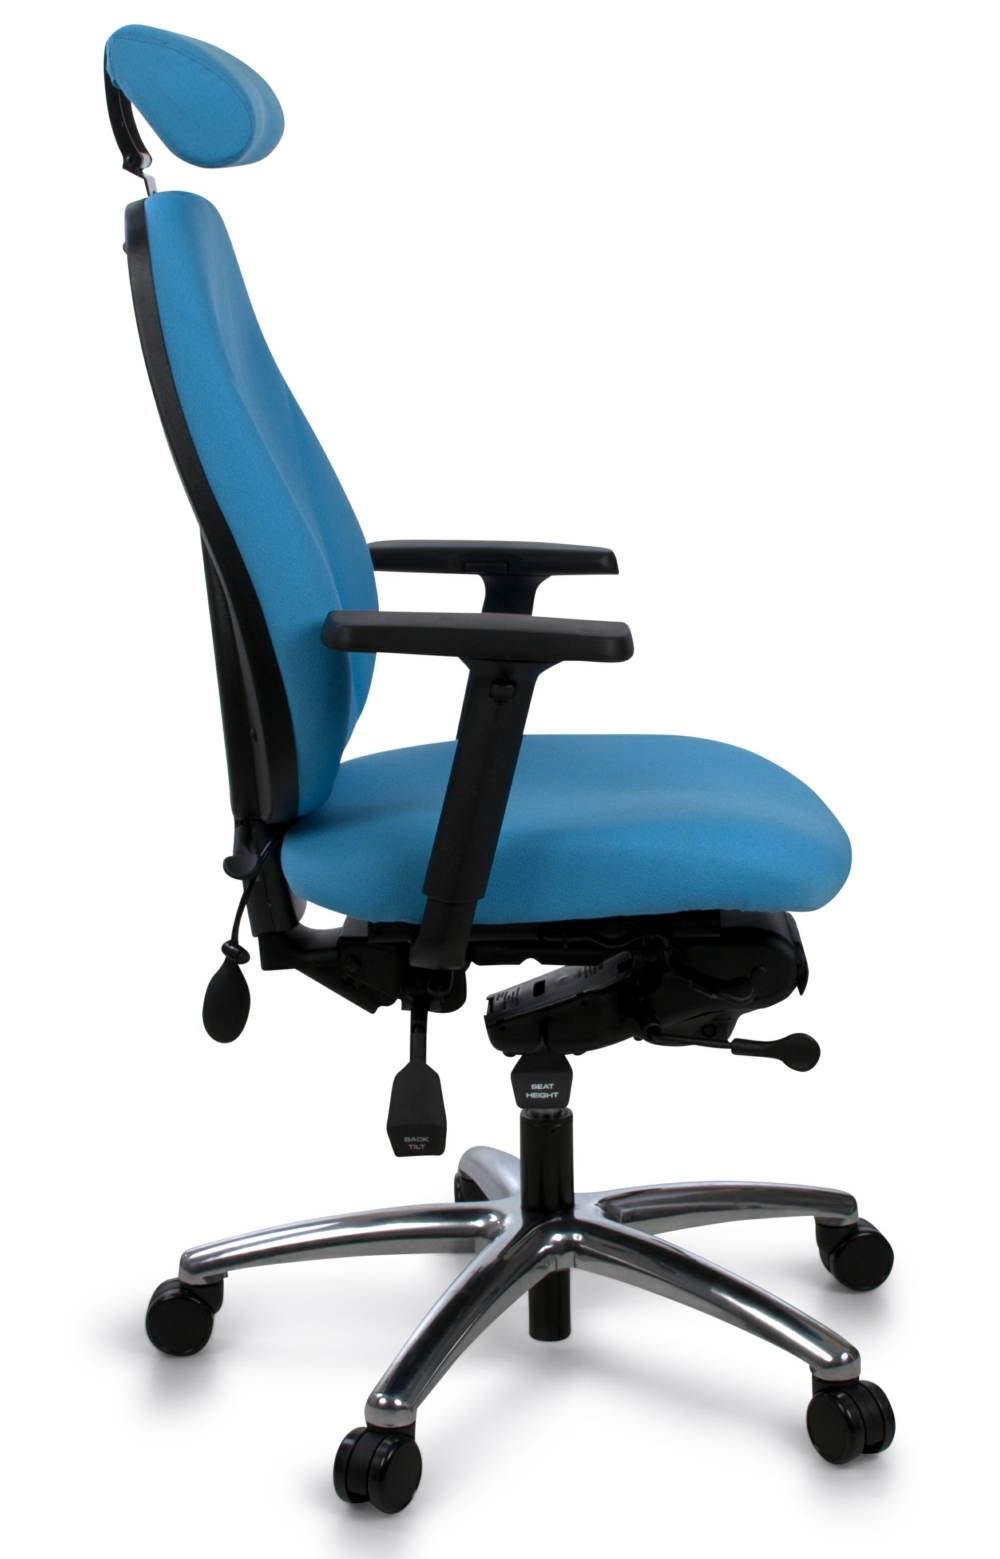 Marvelous Opera 20 6 Ergonomic Office Chair Gmtry Best Dining Table And Chair Ideas Images Gmtryco